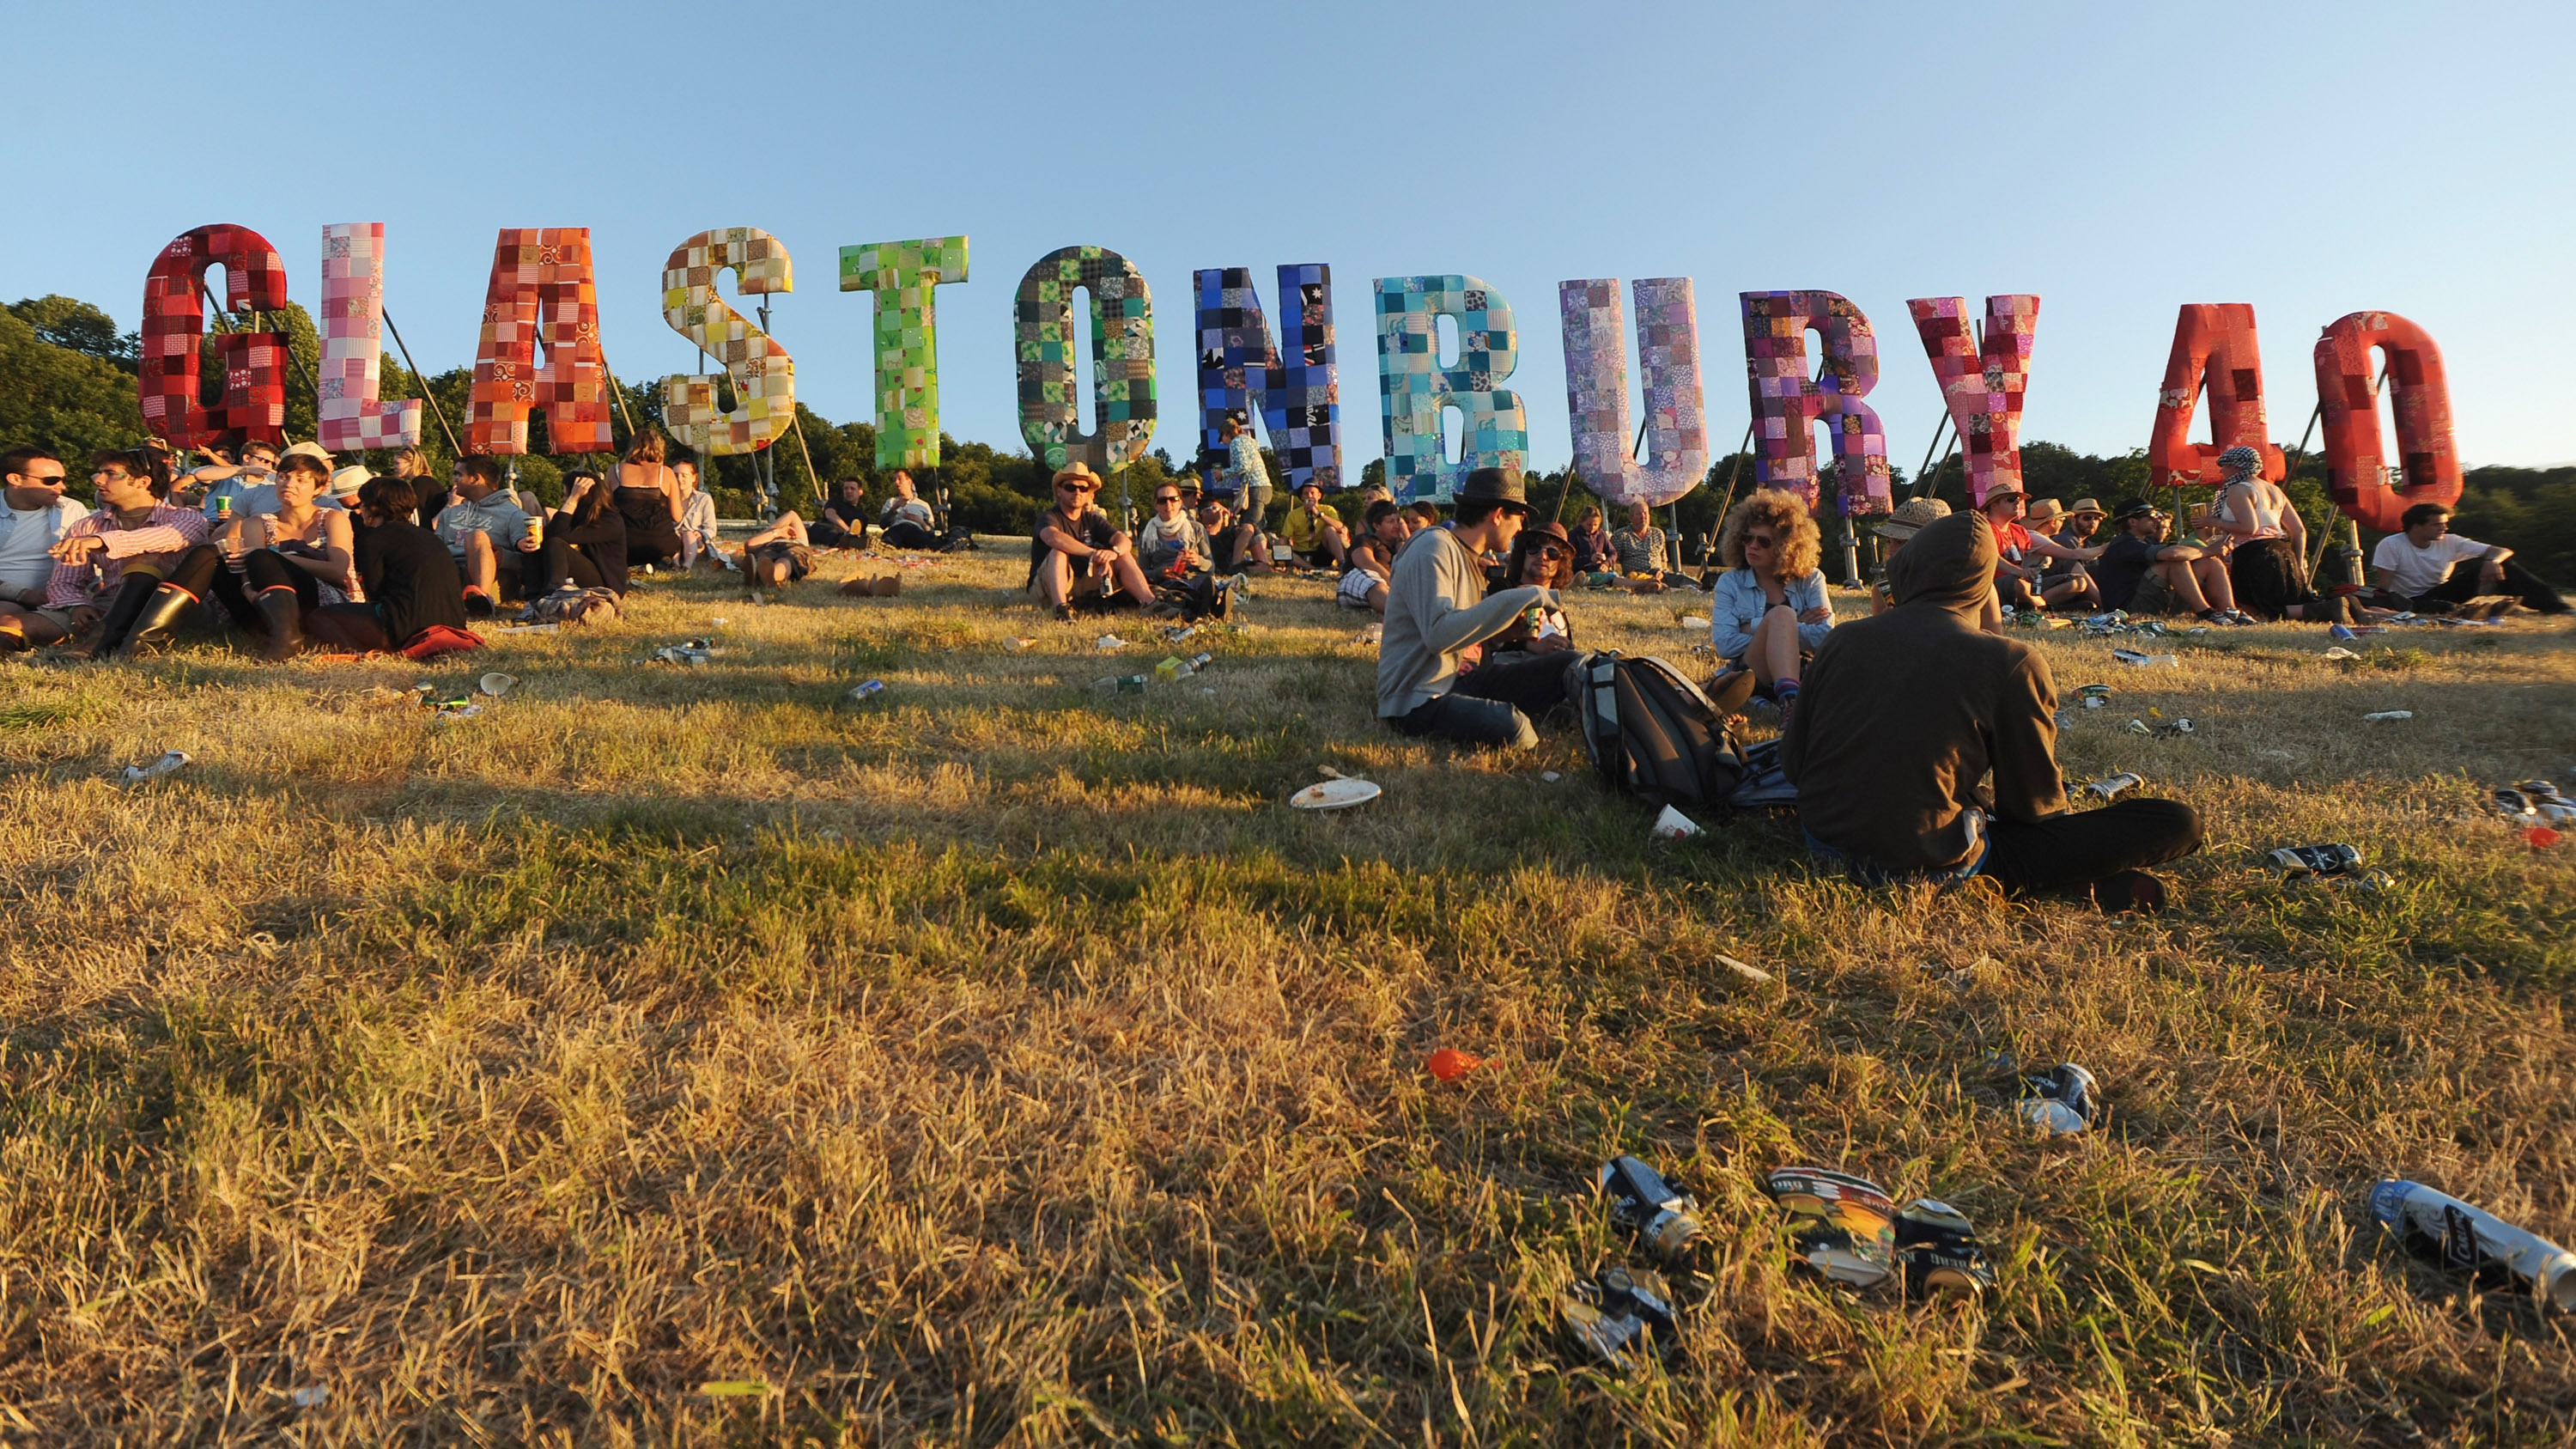 Glastonbury Line Up Update: FULL GLASTONBURY LINE-UP REVEALED